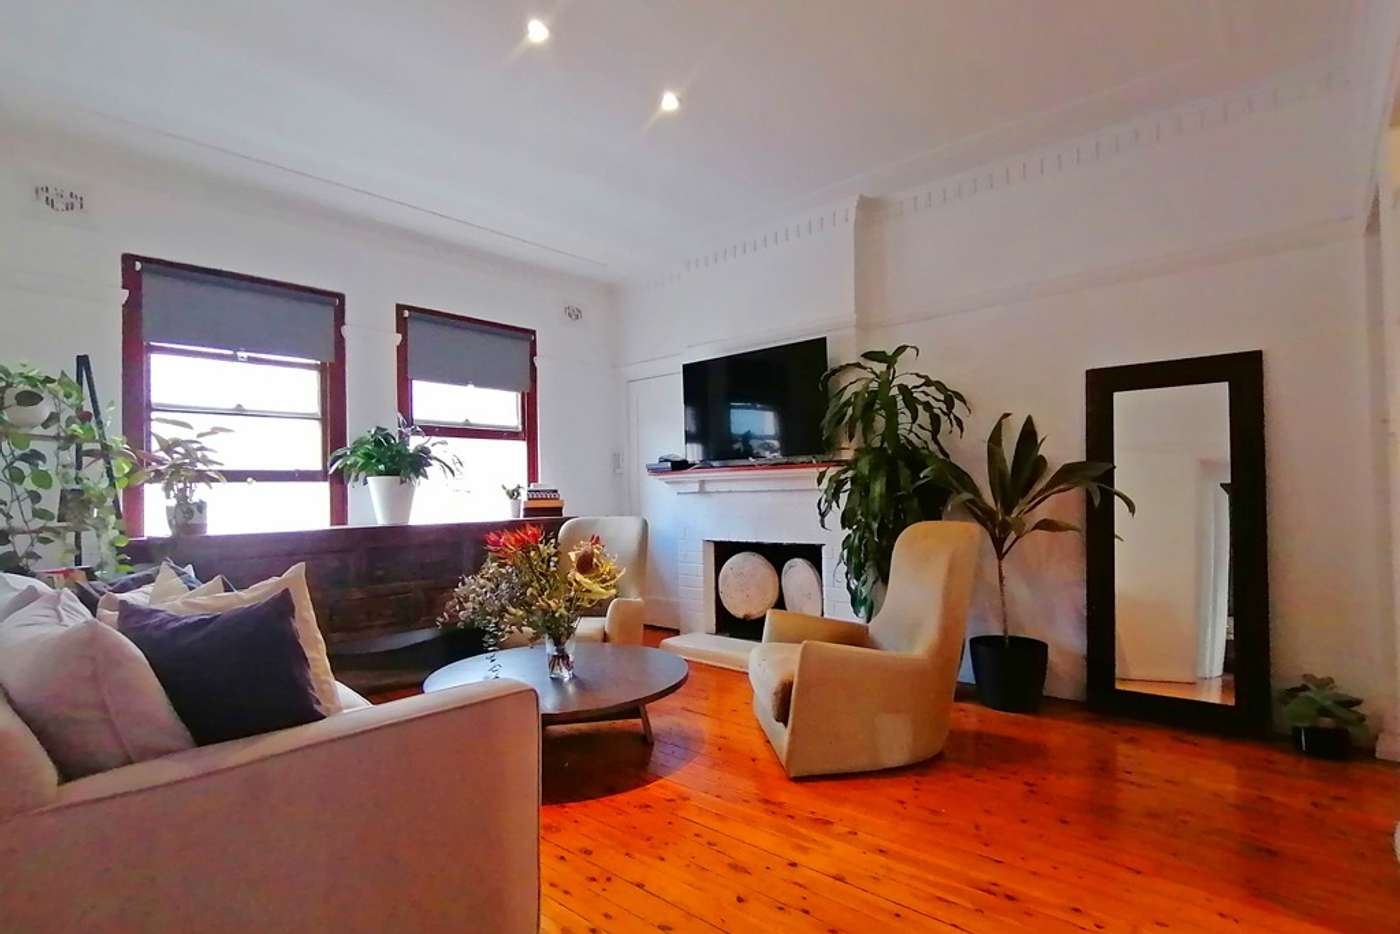 Main view of Homely apartment listing, 132 Warners Avenue, Bondi Beach NSW 2026